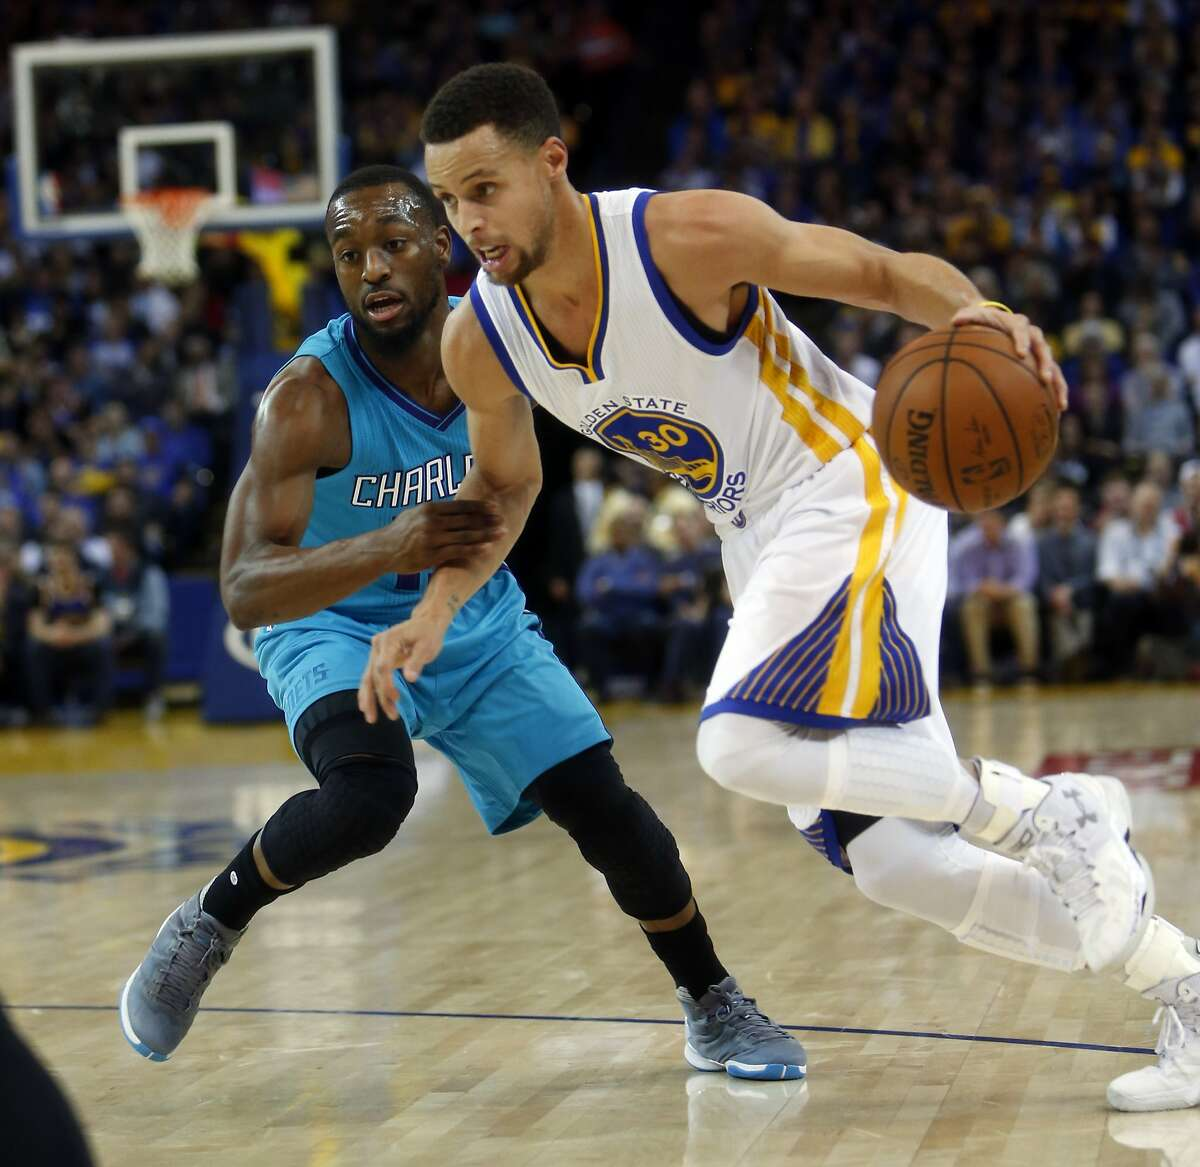 Golden State Warriors' Stephen Curry drives against Charlotte Hornets' Kemba Walker in 2nd quarter during NBA game at Oracle Arena in Oakland, Calif., on Monday, January 4, 2016.